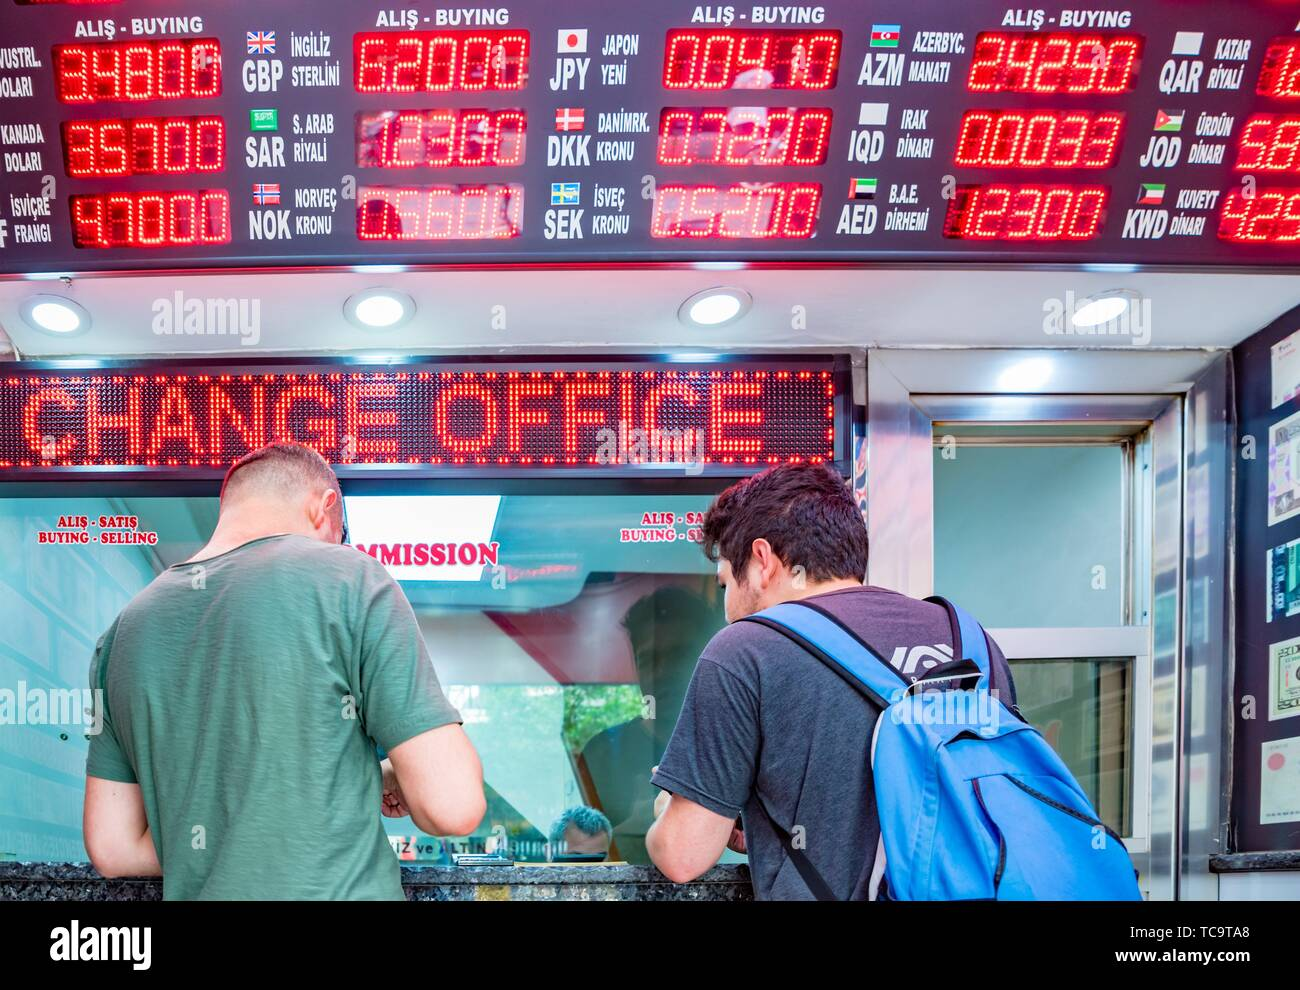 Unidentified people change currency at money changer shop in Istanbul, Turkey. 26 May 2018. - Stock Image